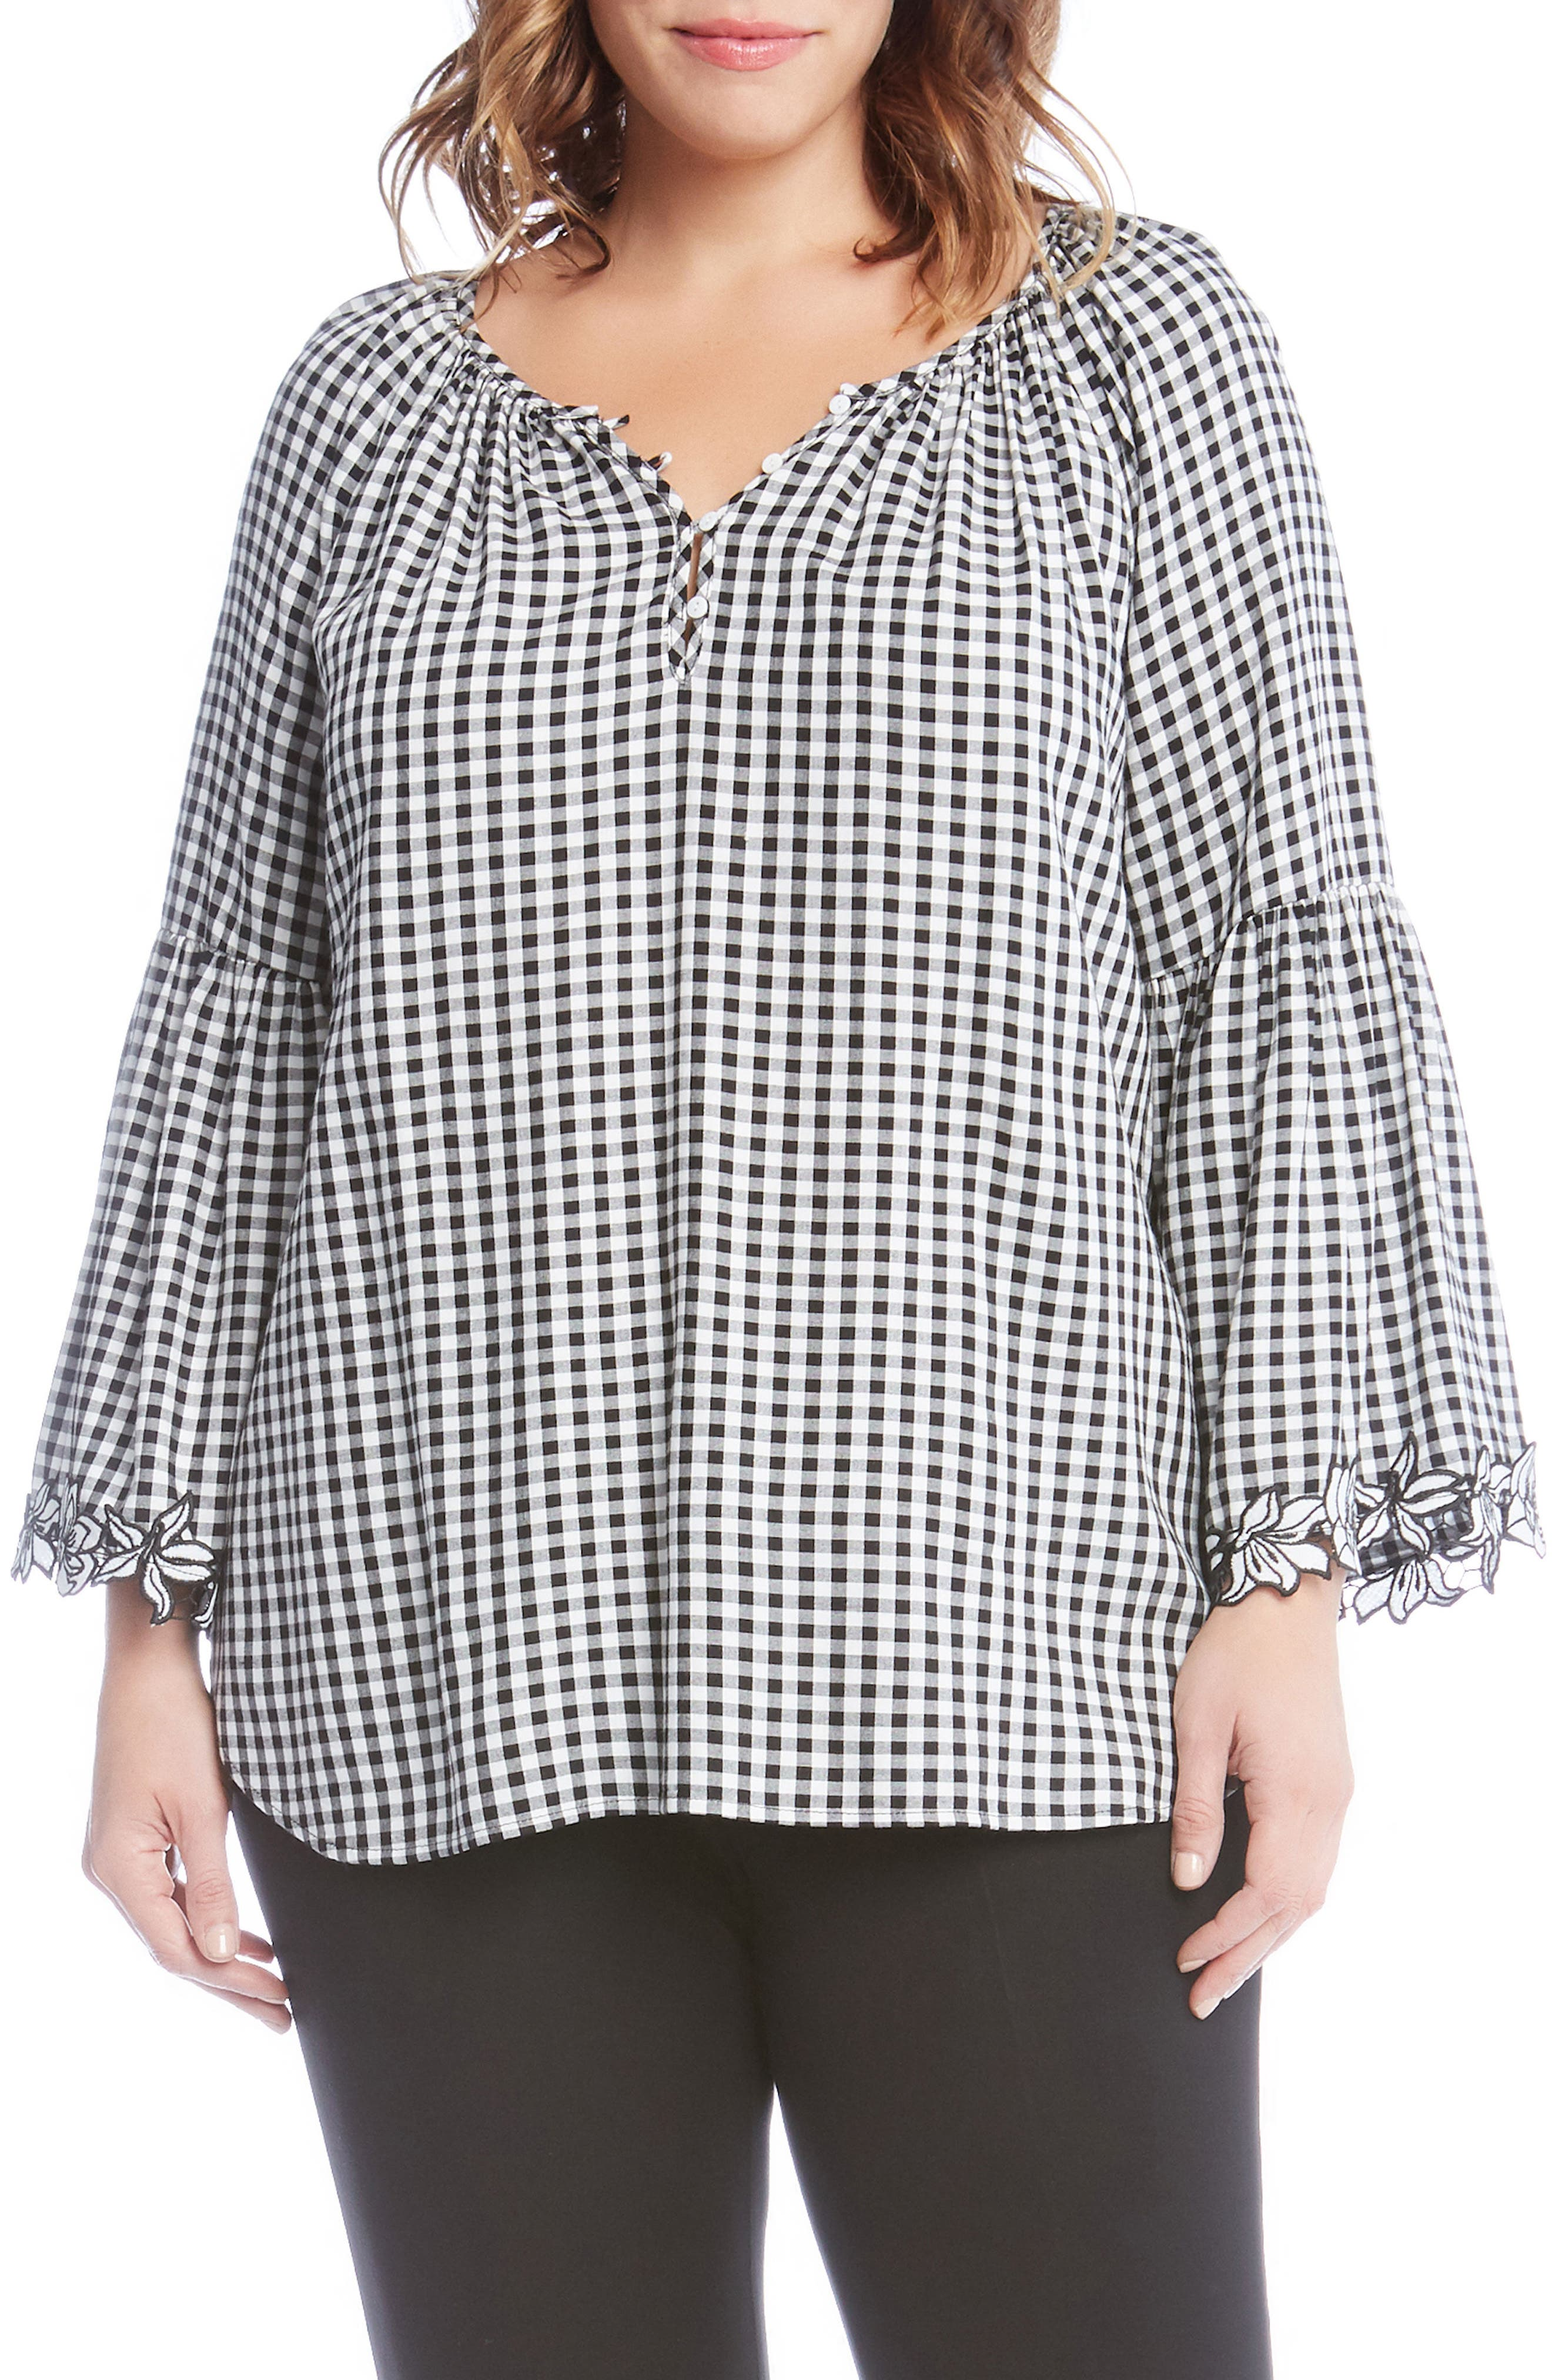 Gingham Bell Sleeve Top,                             Main thumbnail 1, color,                             Black